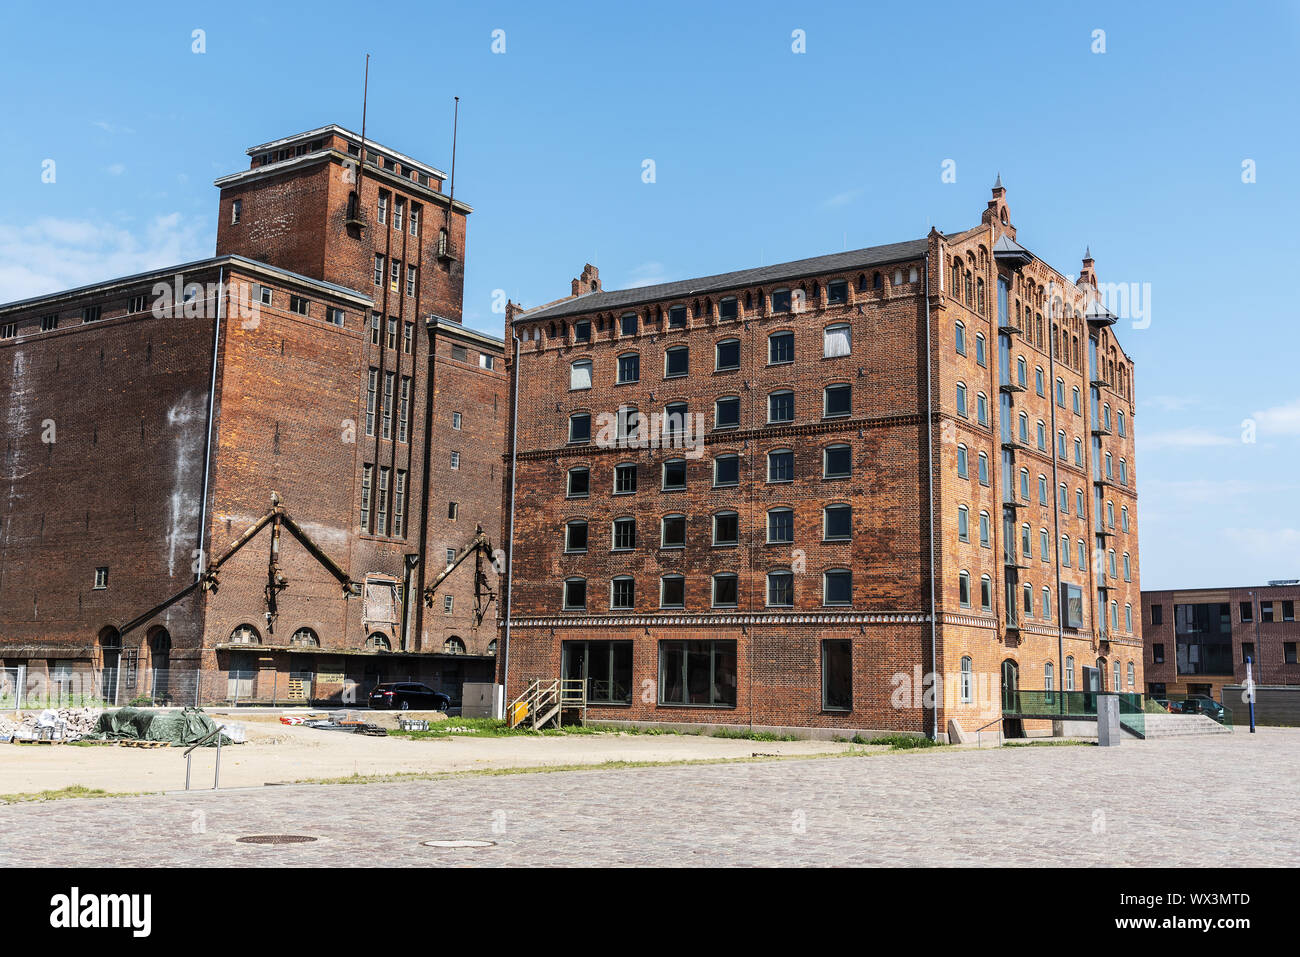 historic store house, old harbour, Wismar, Mecklenburg-Western Pomerania, Germany, Europe Stock Photo